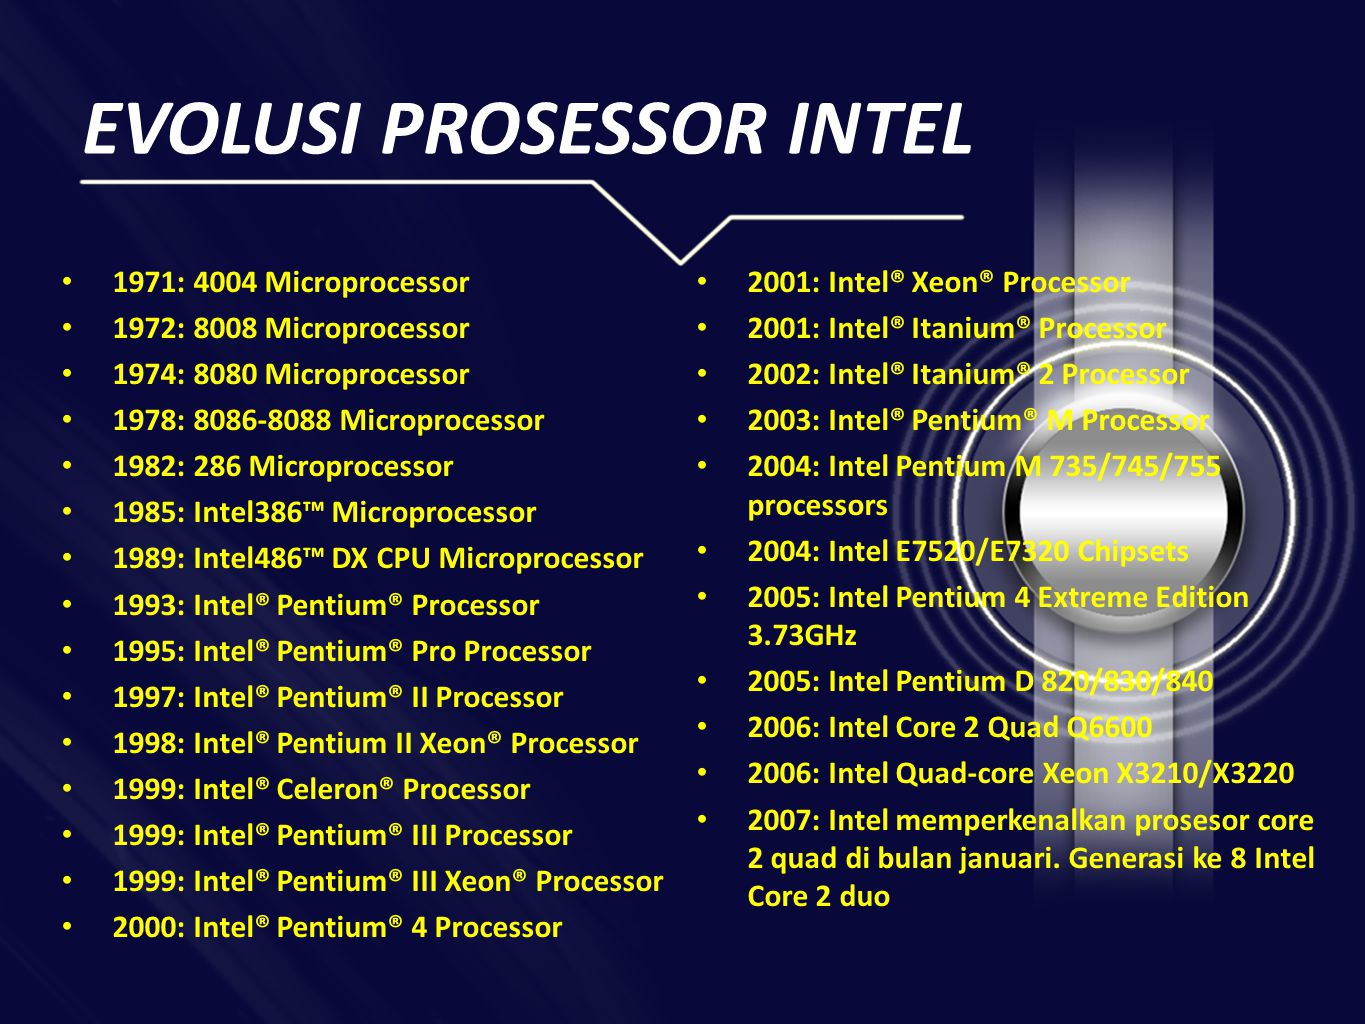 EVOLUSI PROSESSOR INTEL